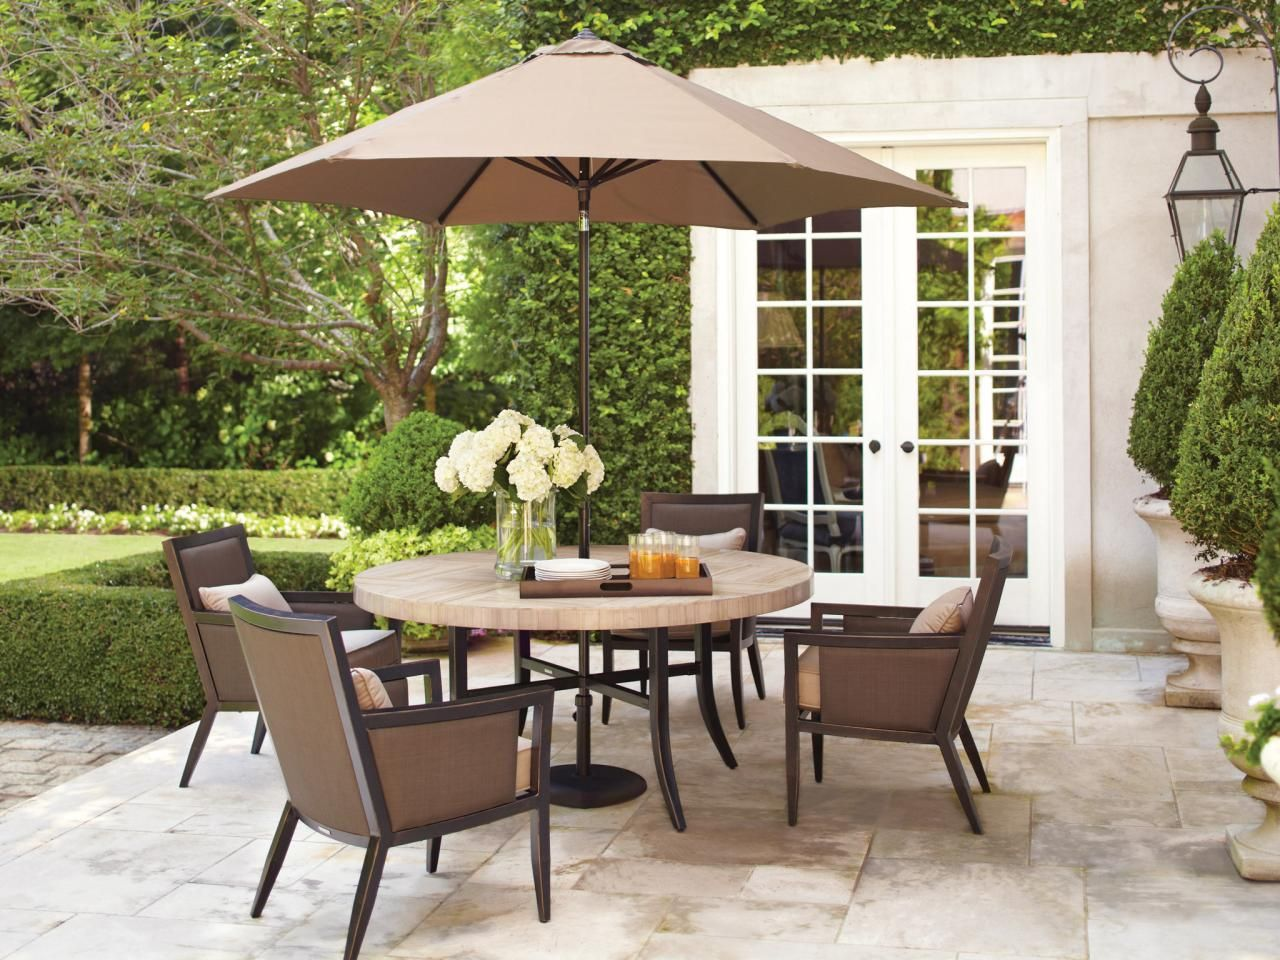 ~ Neutral colors in both outdoor furniture, floor tile and containers work in harmony in this elegant outdoor dining area ~